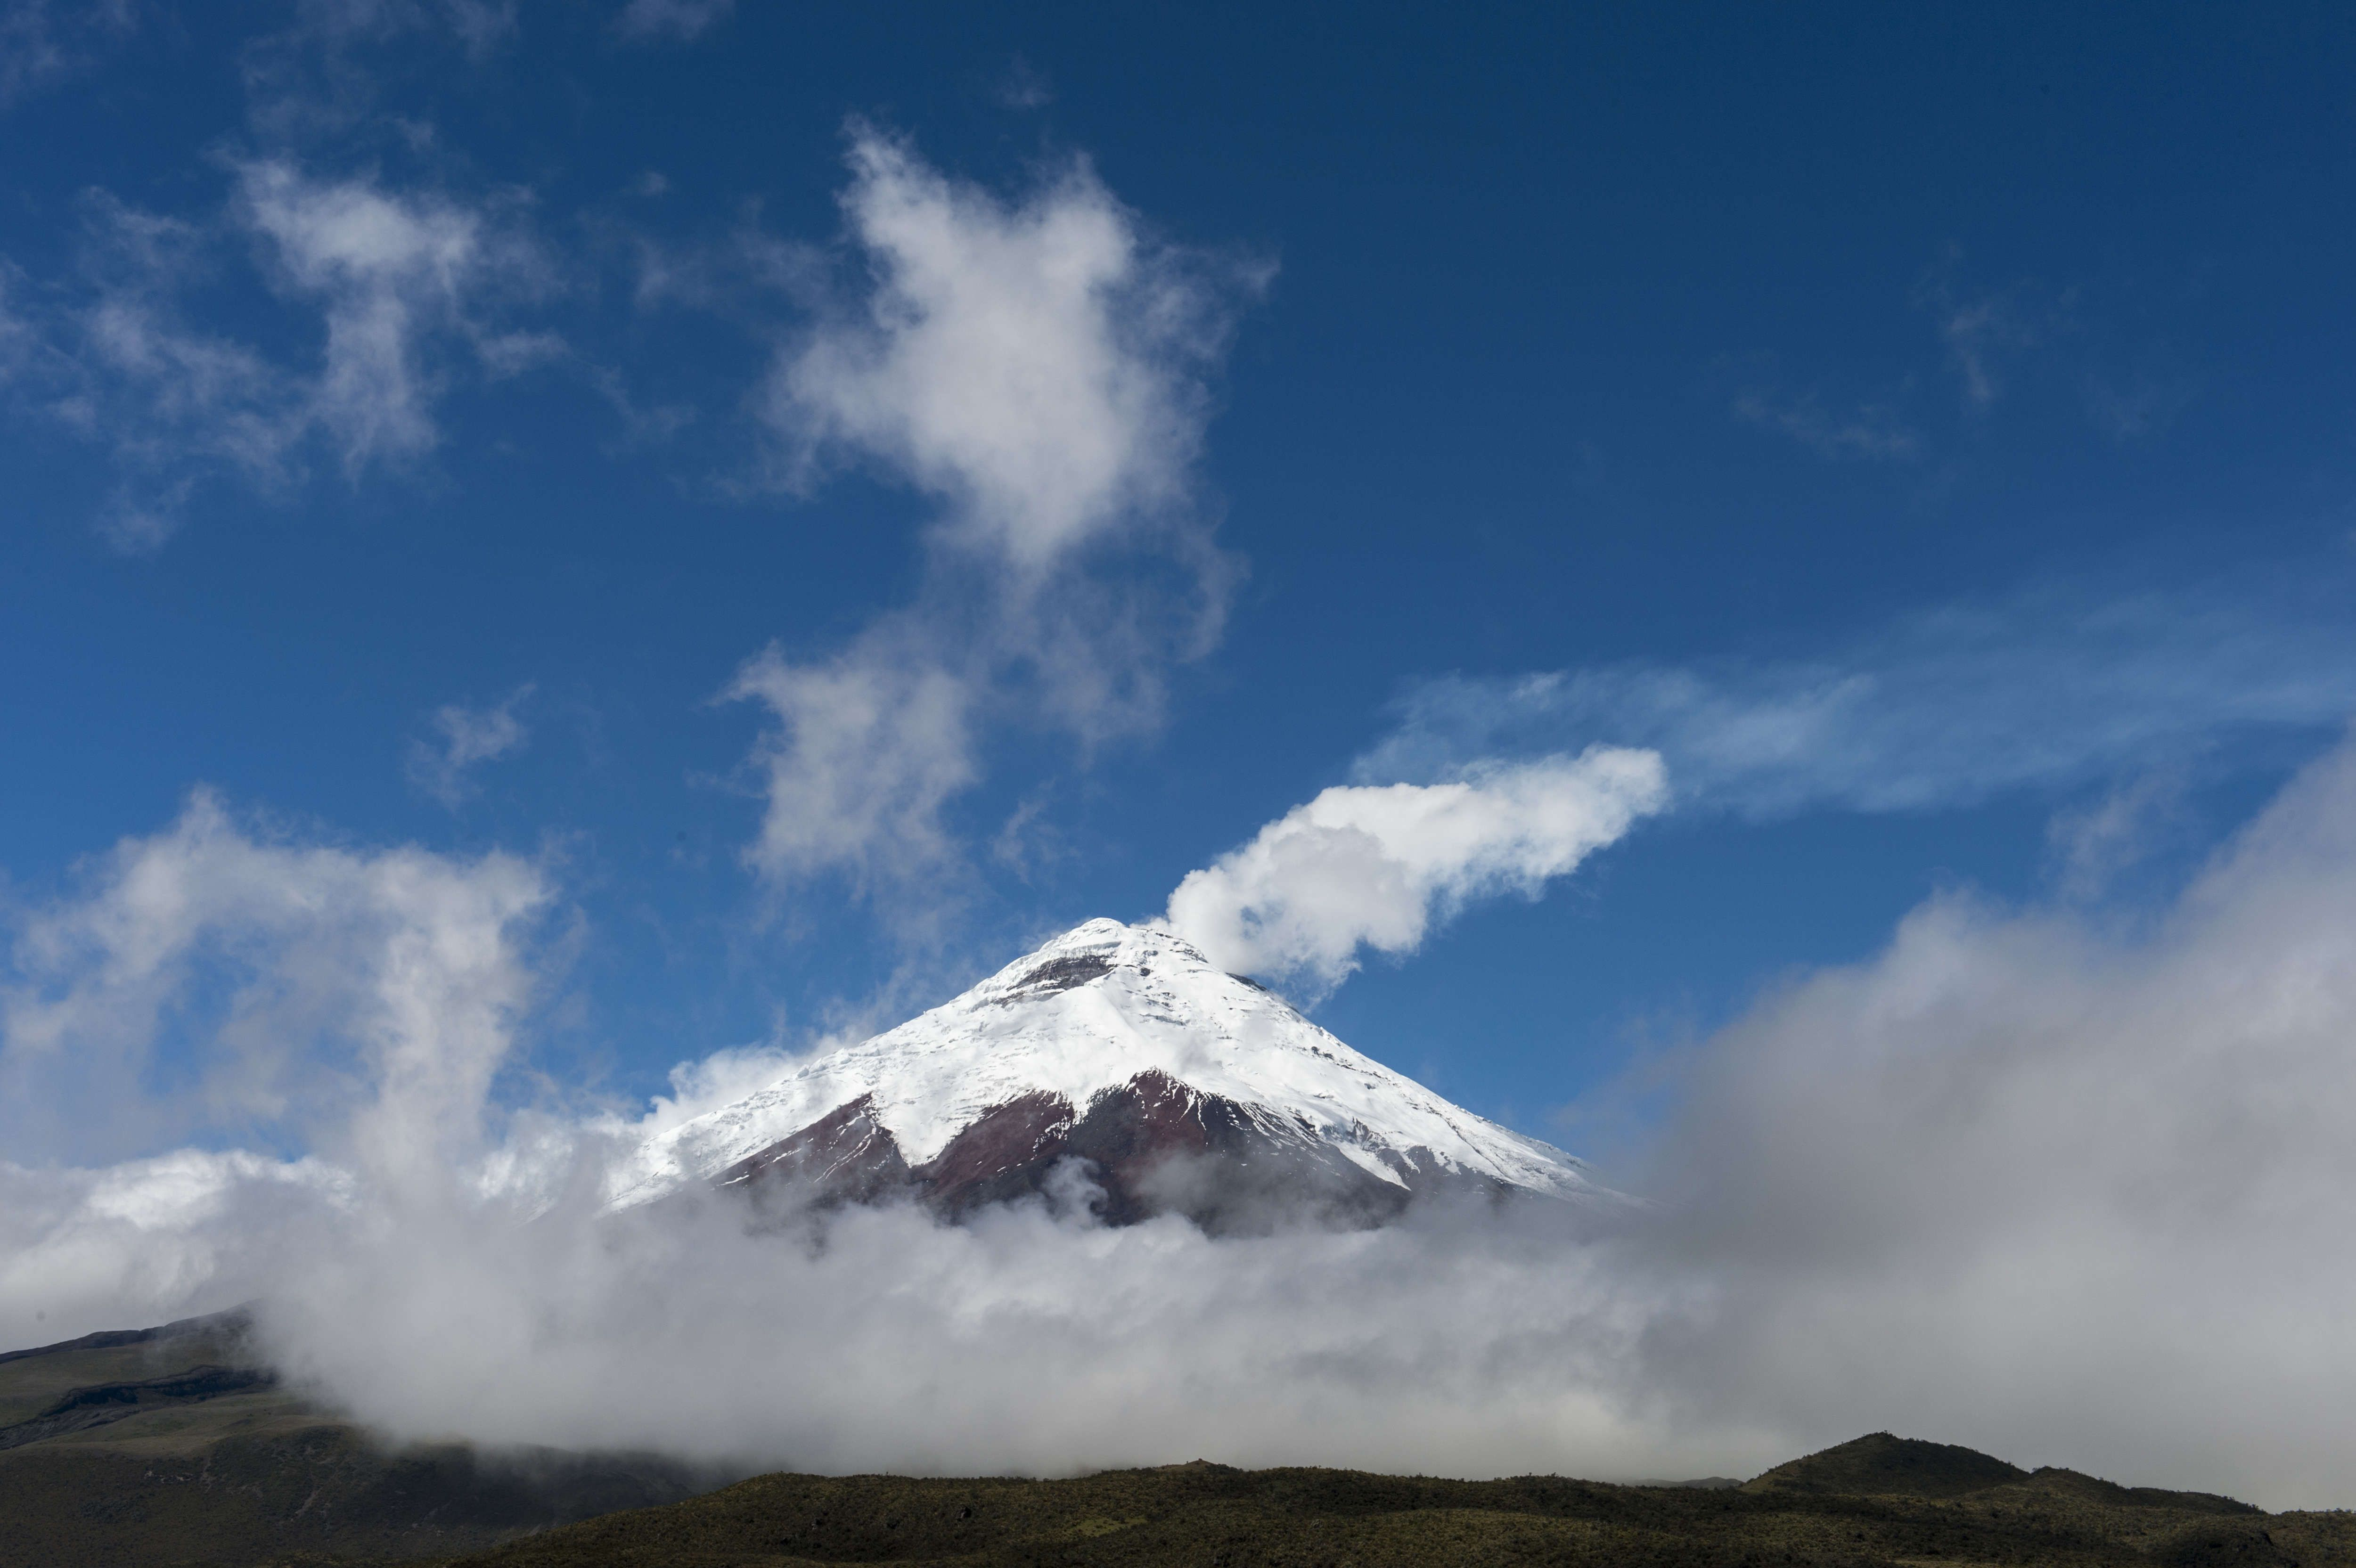 View from the Cotopaxi National Park of Cotopaxi volcano (5,...